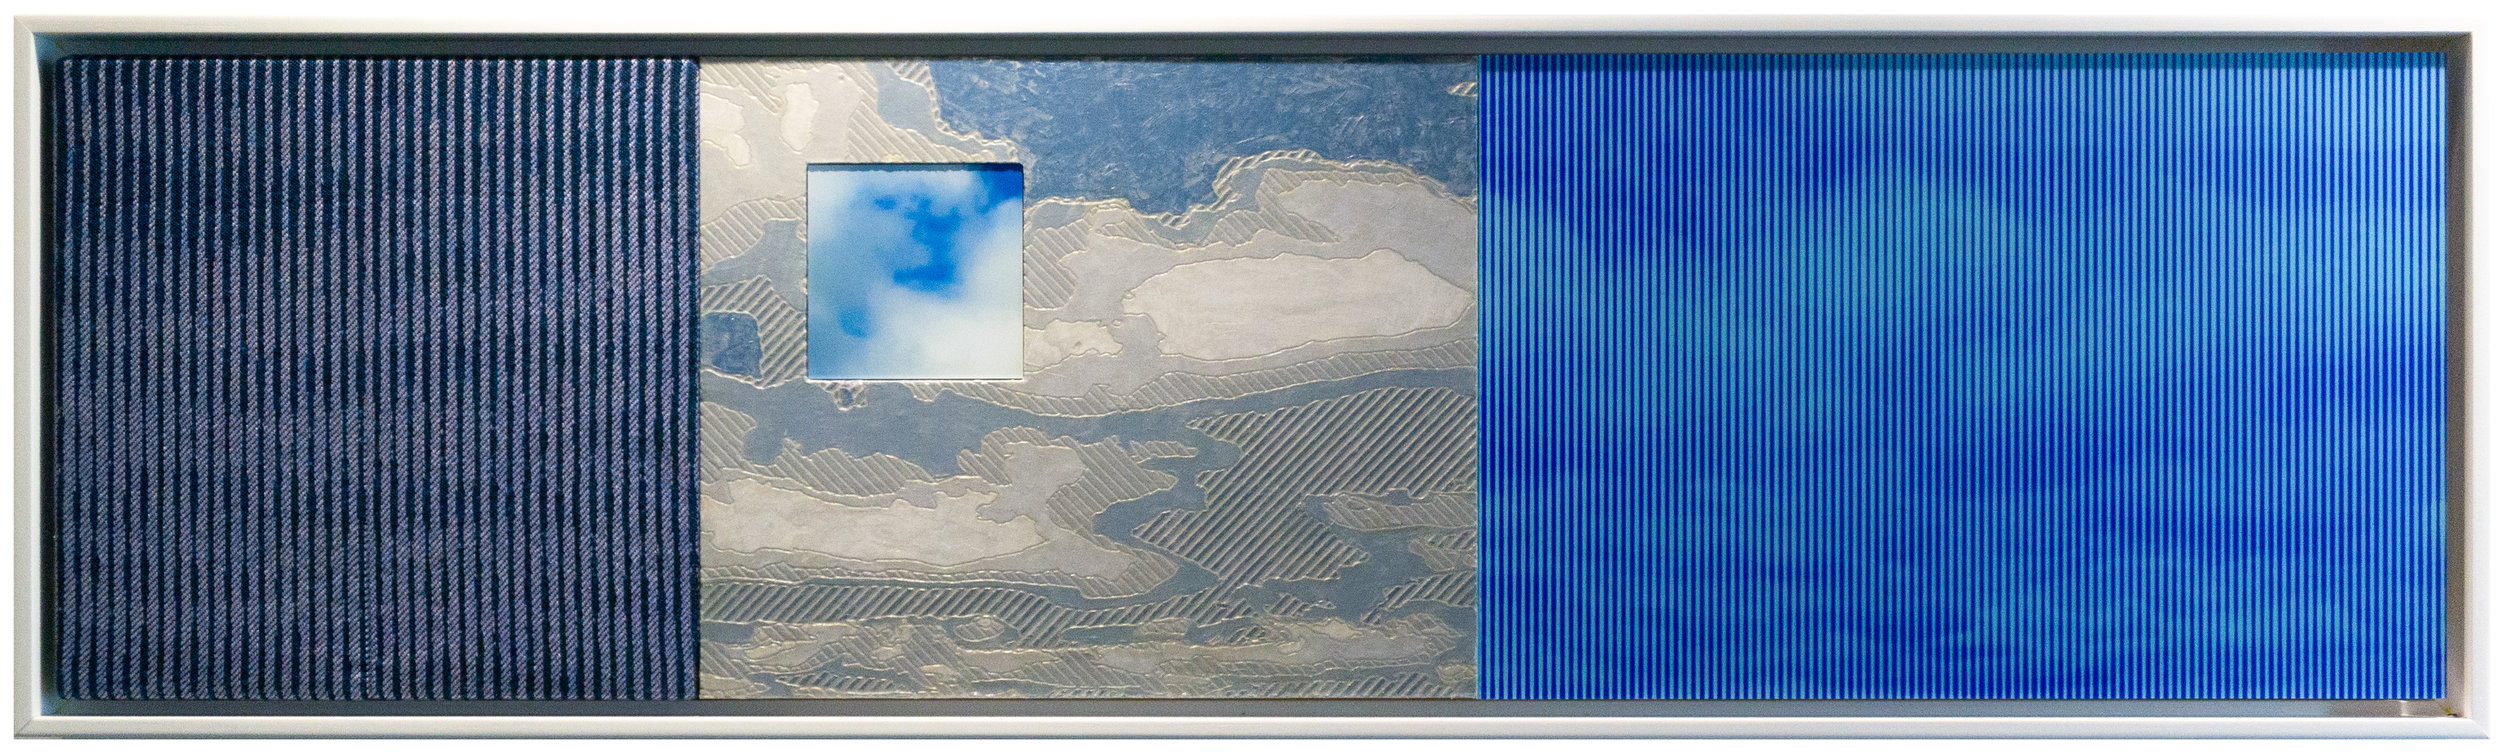 """From Sky to Sky   44"""" x 12"""" Jacquard tapestry, painted wood relief and digital prints"""